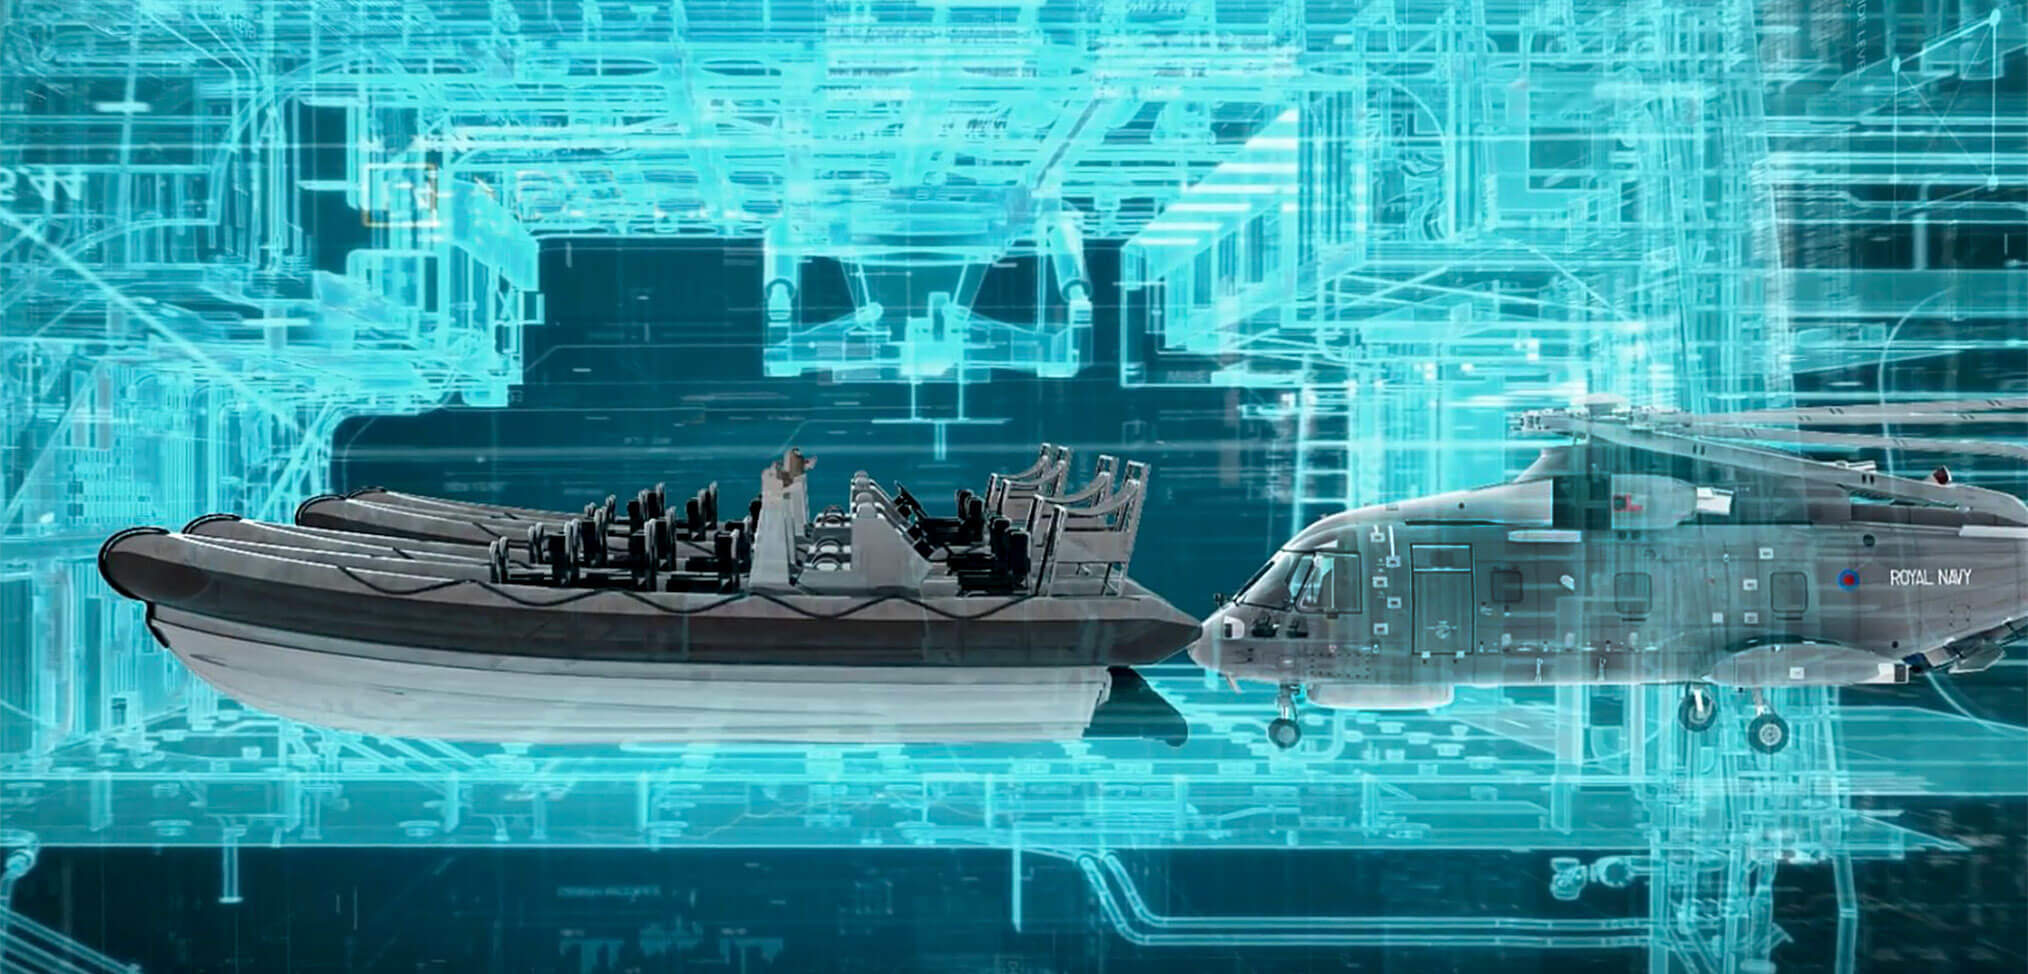 The Type 26 frigate mission bay. Part 2 – configuration and contents